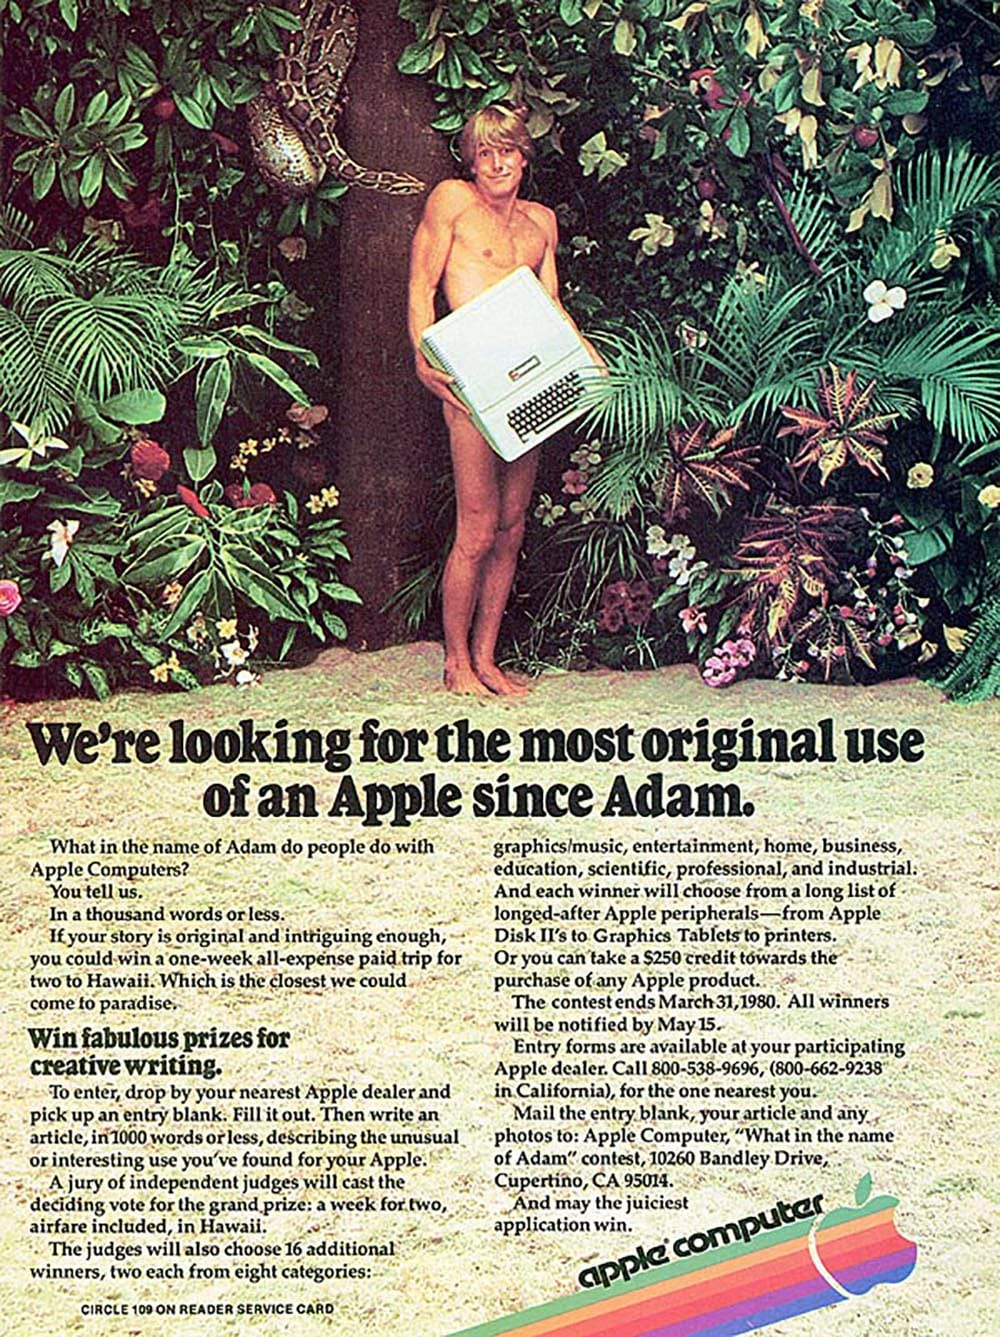 Biblical Advertisement by Apple Computer in 1977